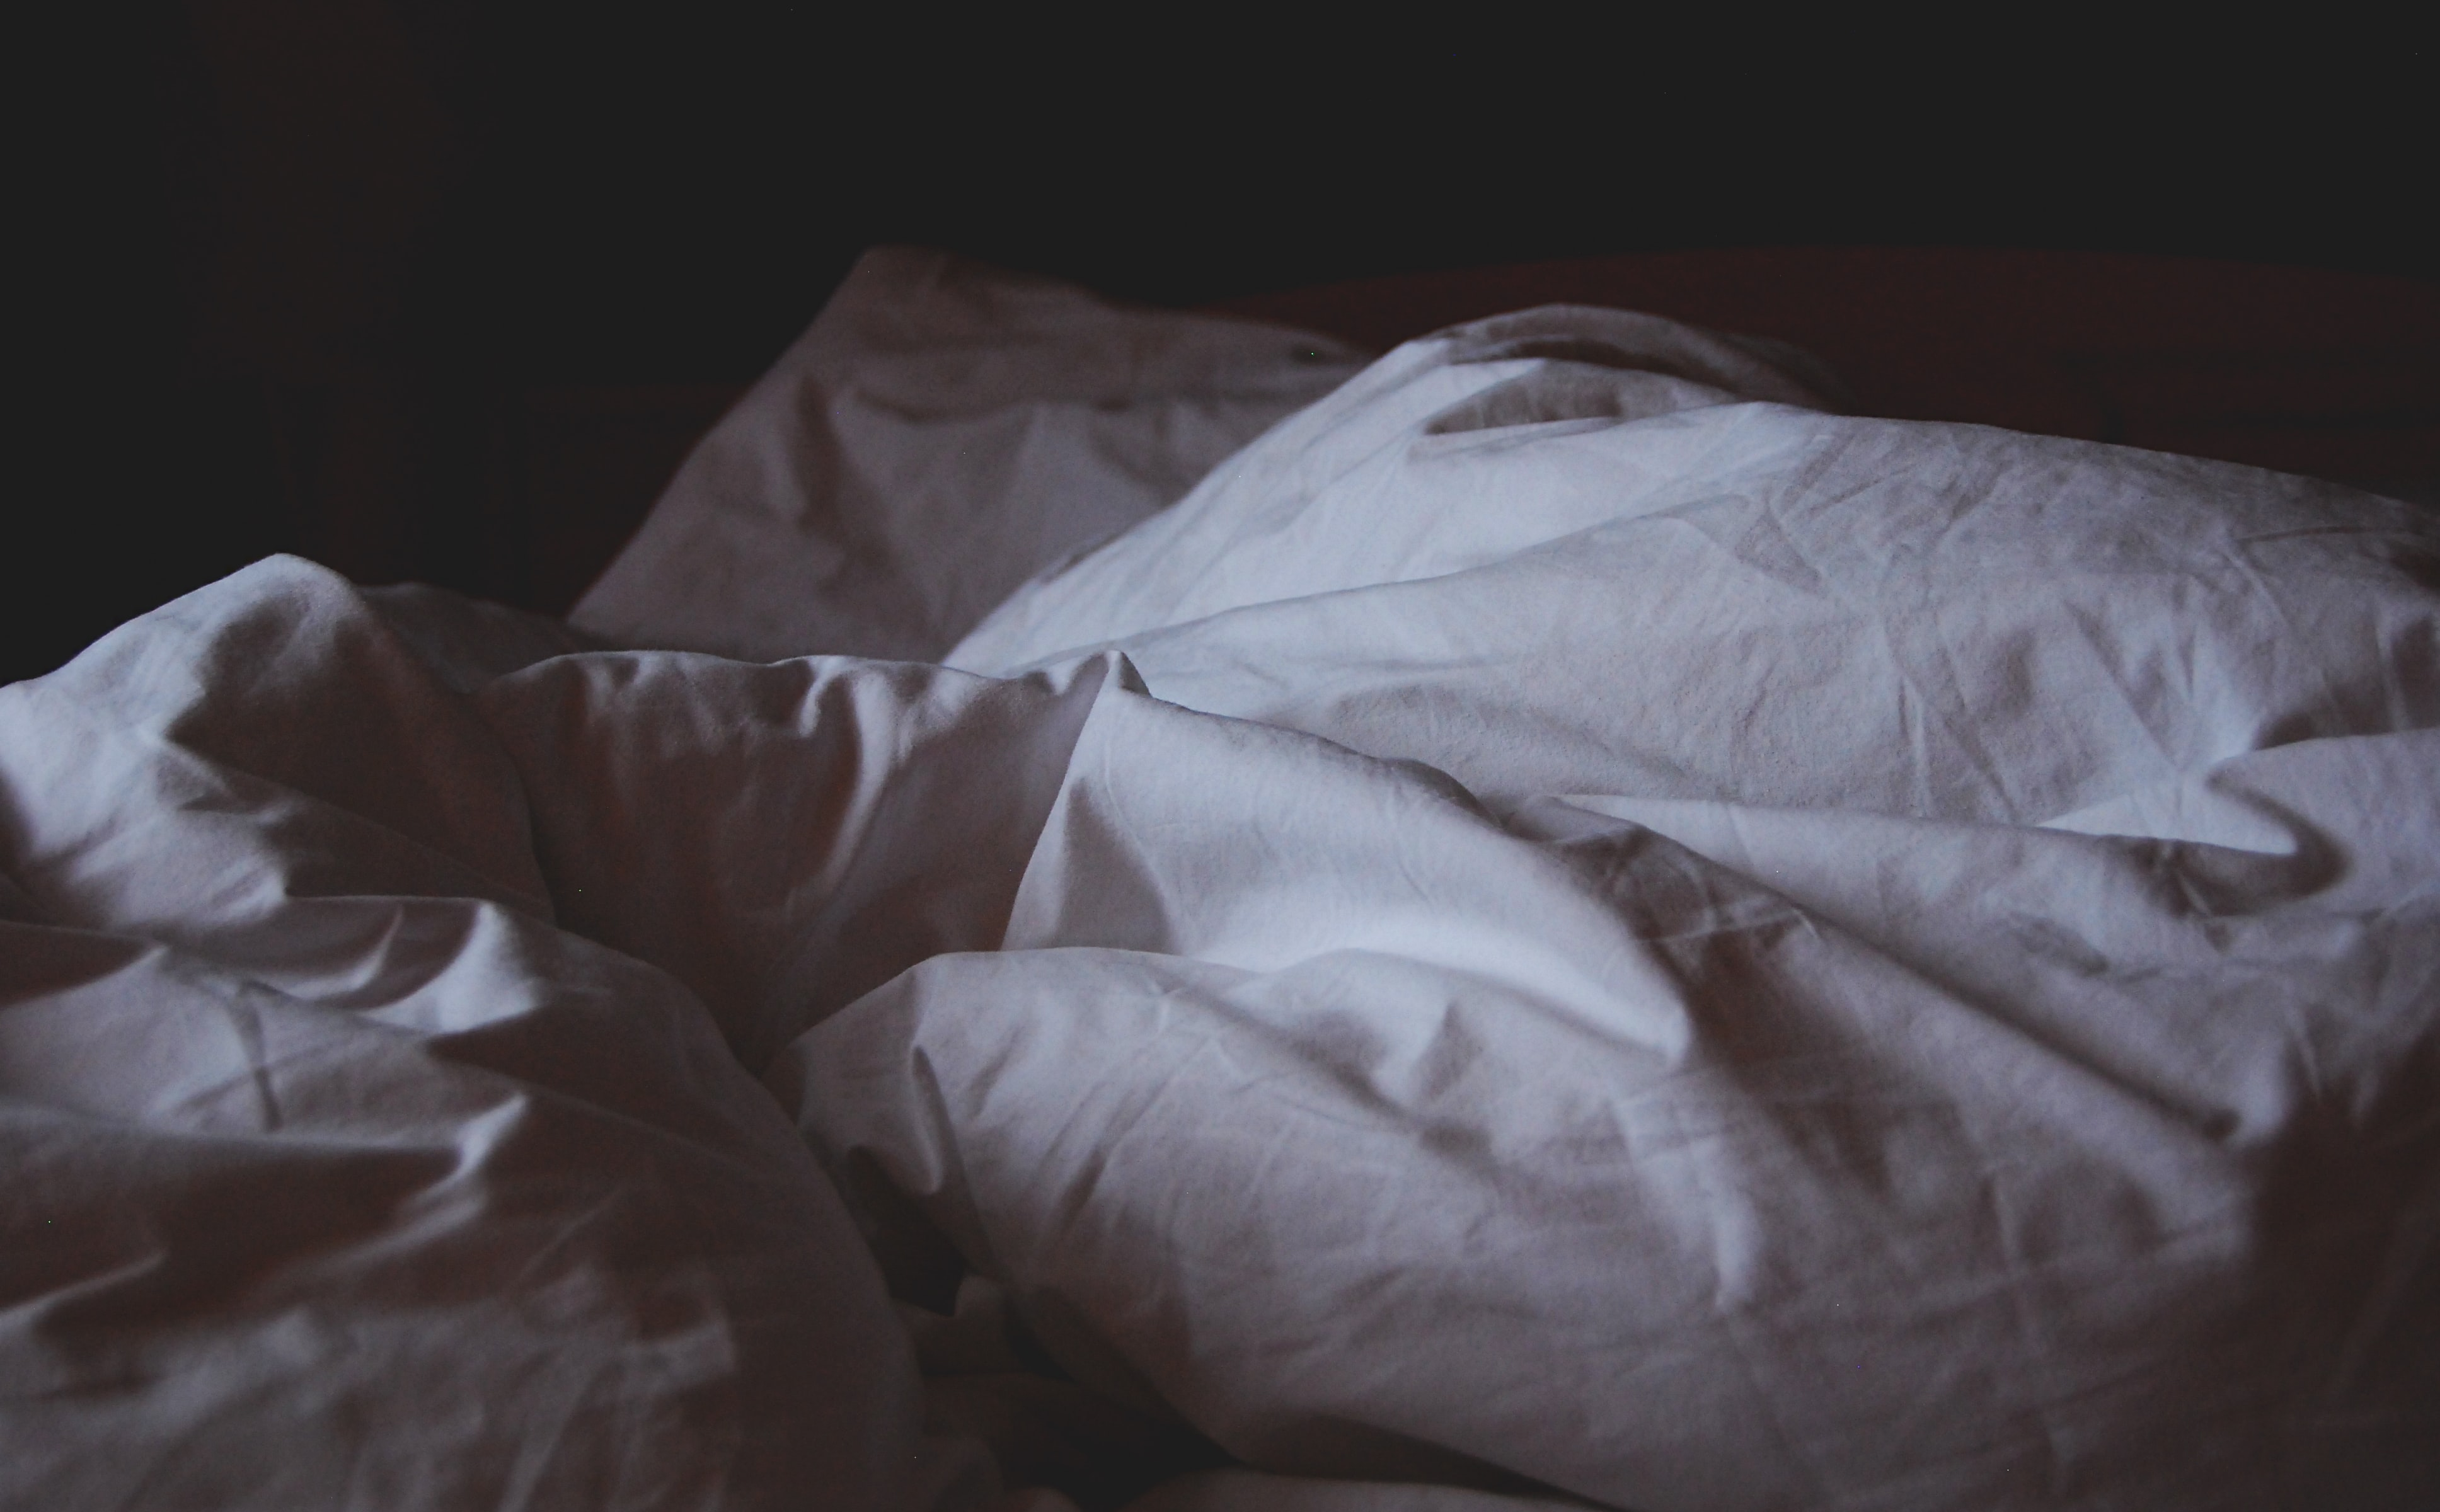 Learn what sleep hygiene is, along with a few tips to help you sleep better.